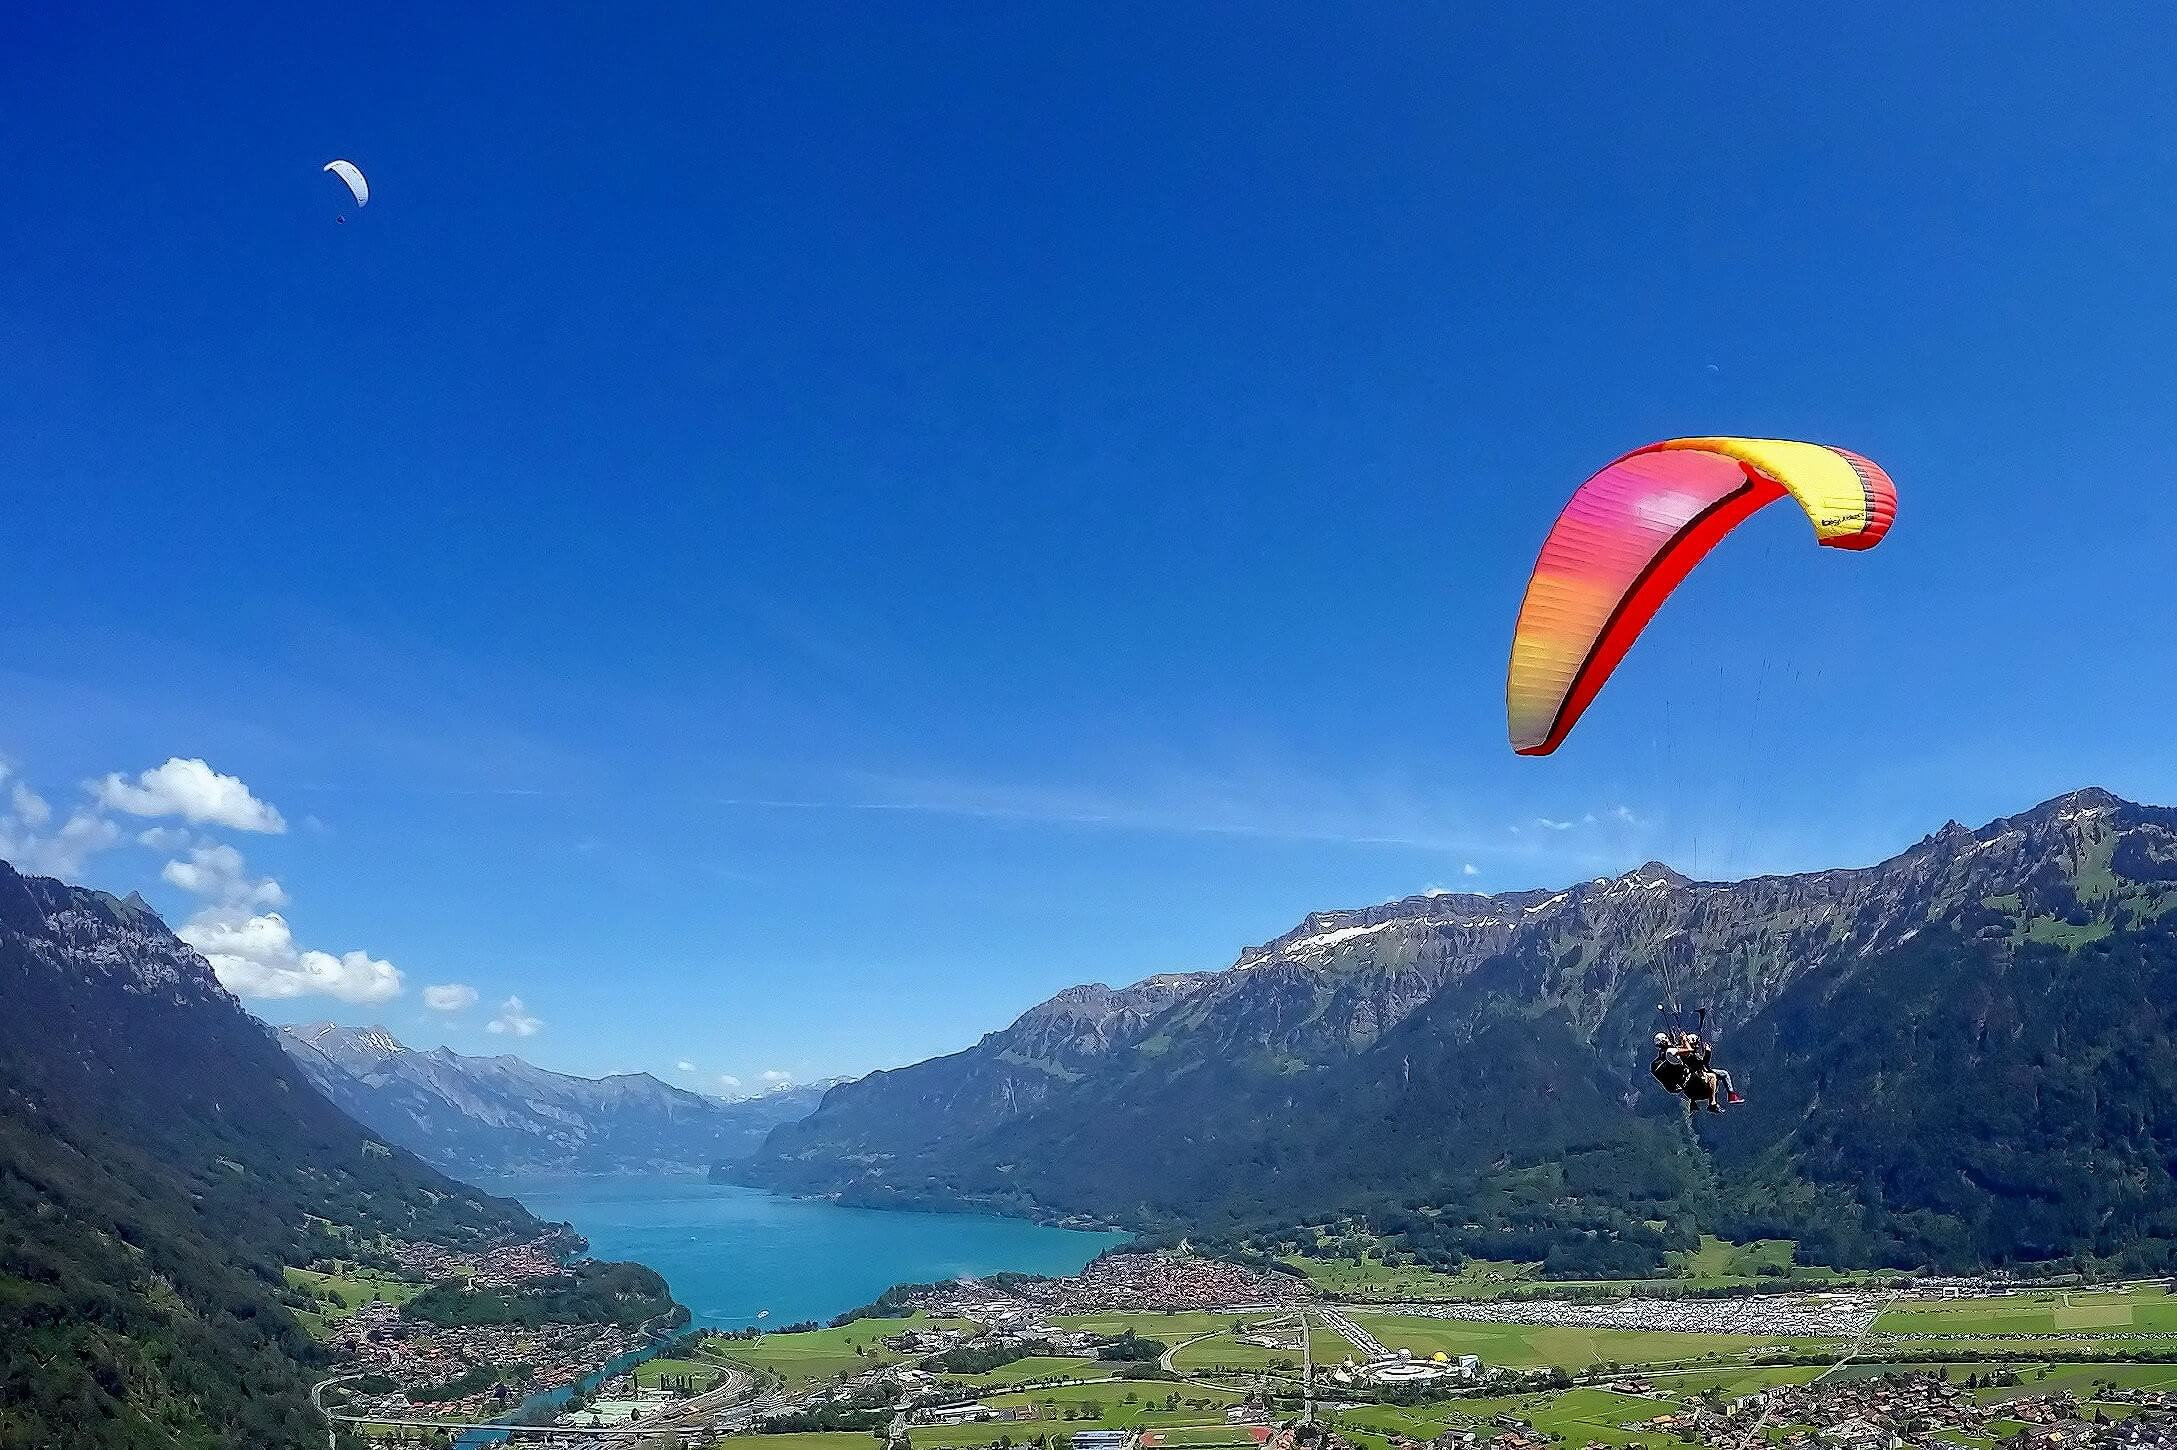 interlaken-paragliding-alpinair-sommer-interlaken-brienzersee